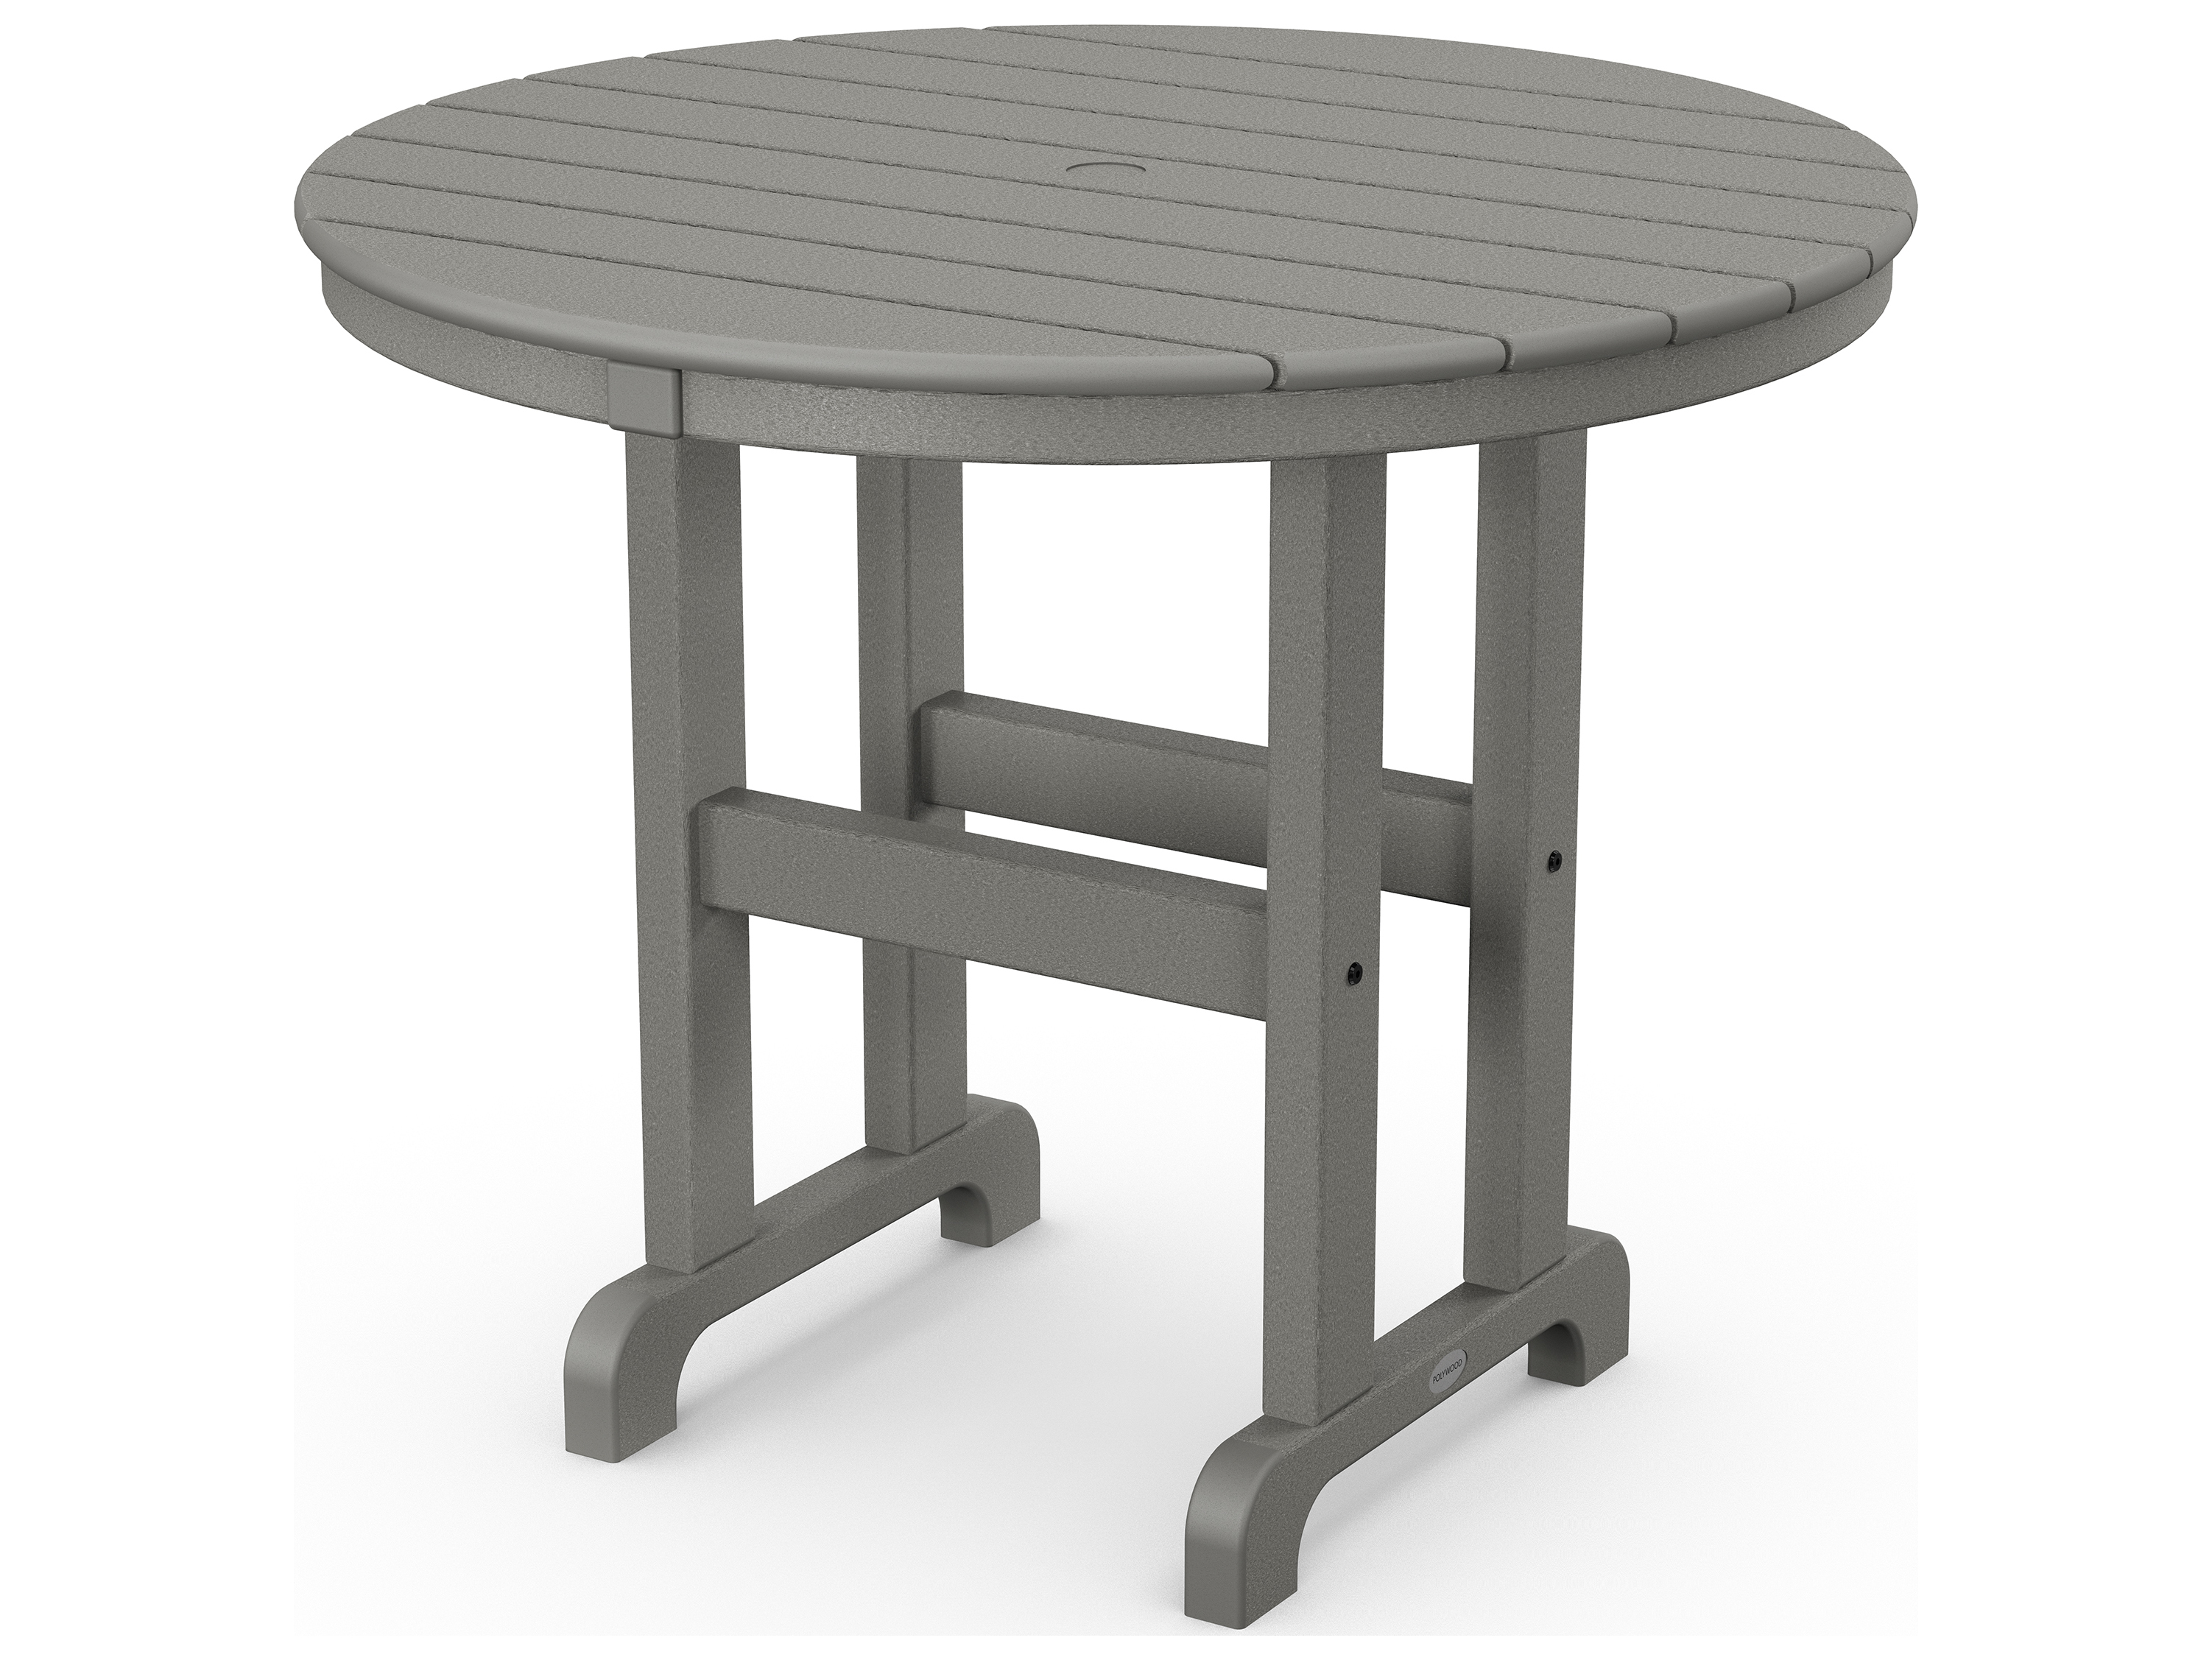 Contemporary Round Dining Table For 6 Patio Dining Tables Outdoor Patioliving